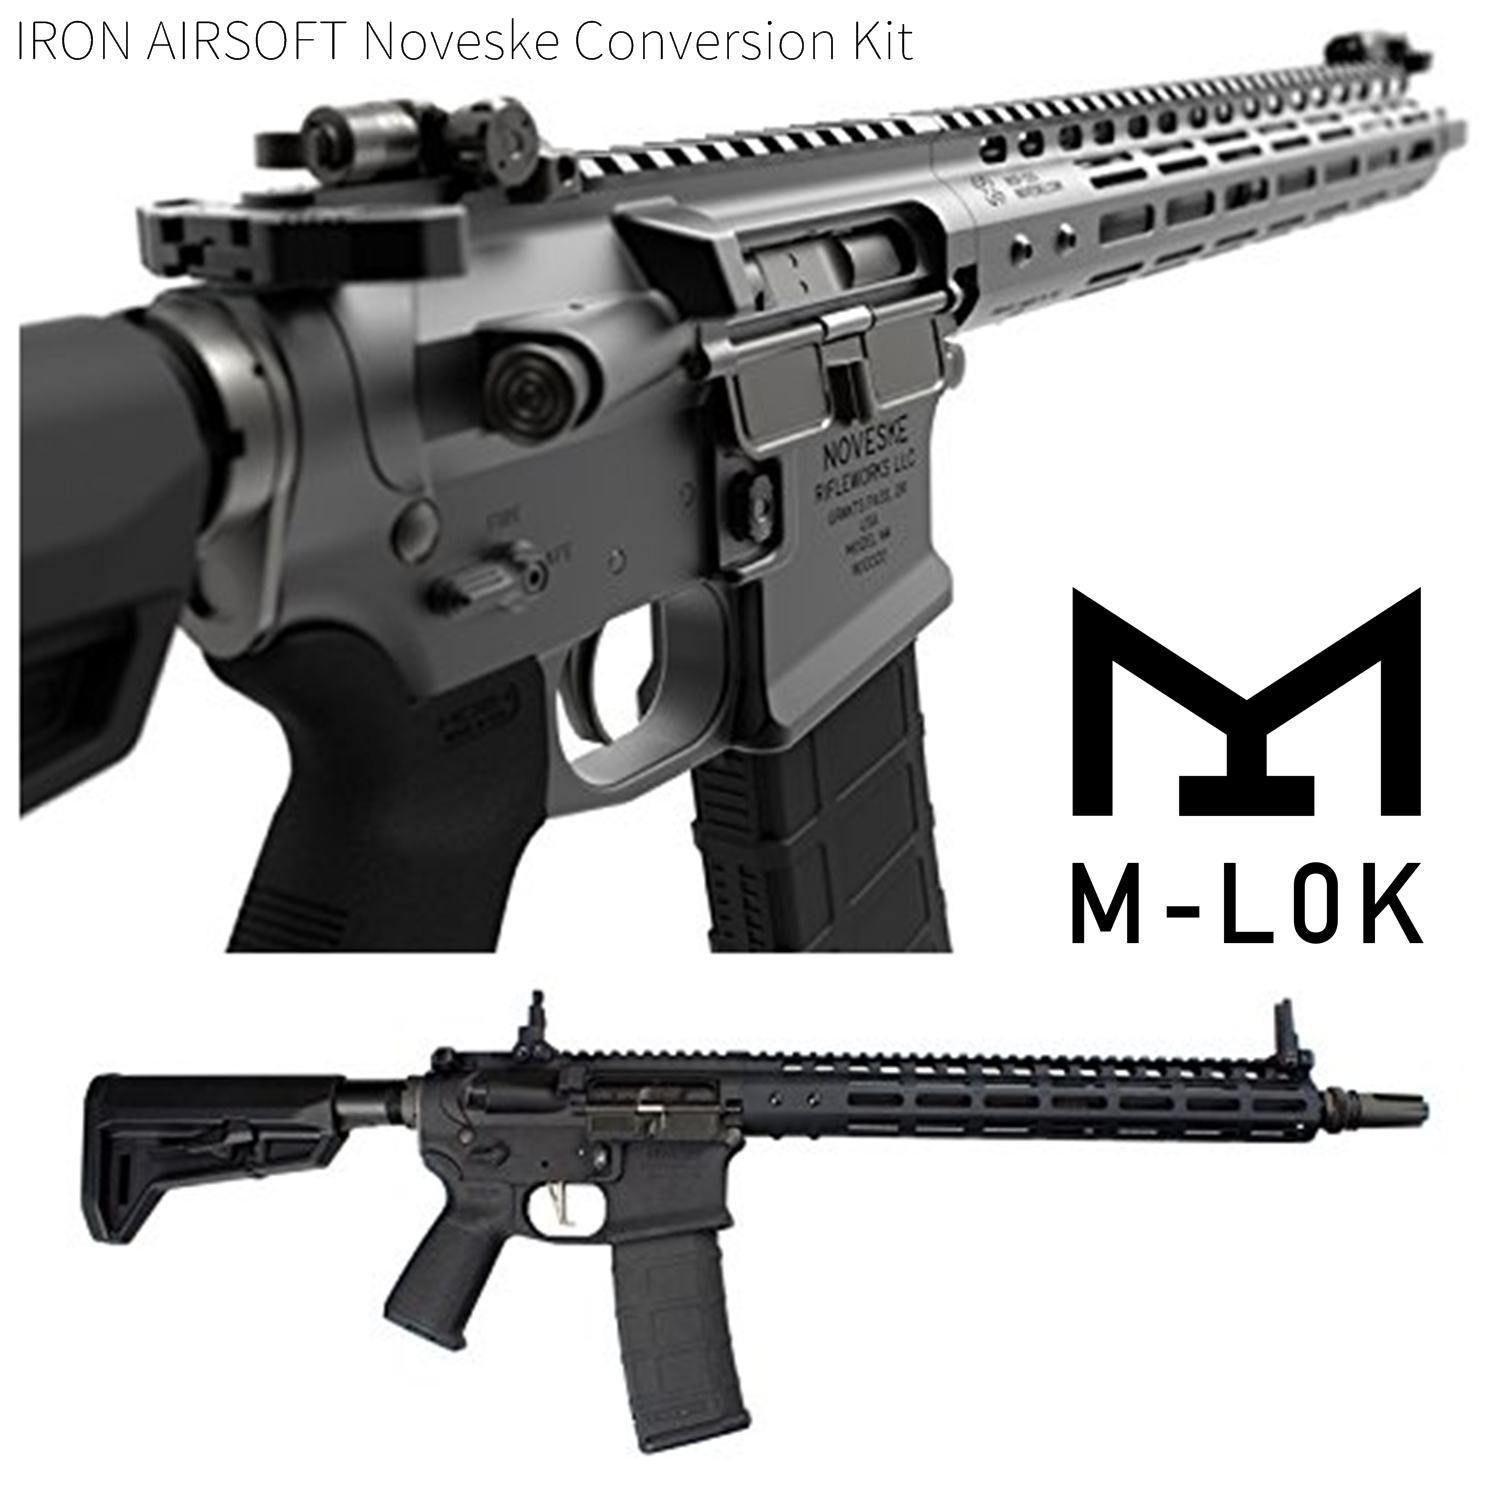 HILOG IRON AIRSOFT Noveske Conversion Kit